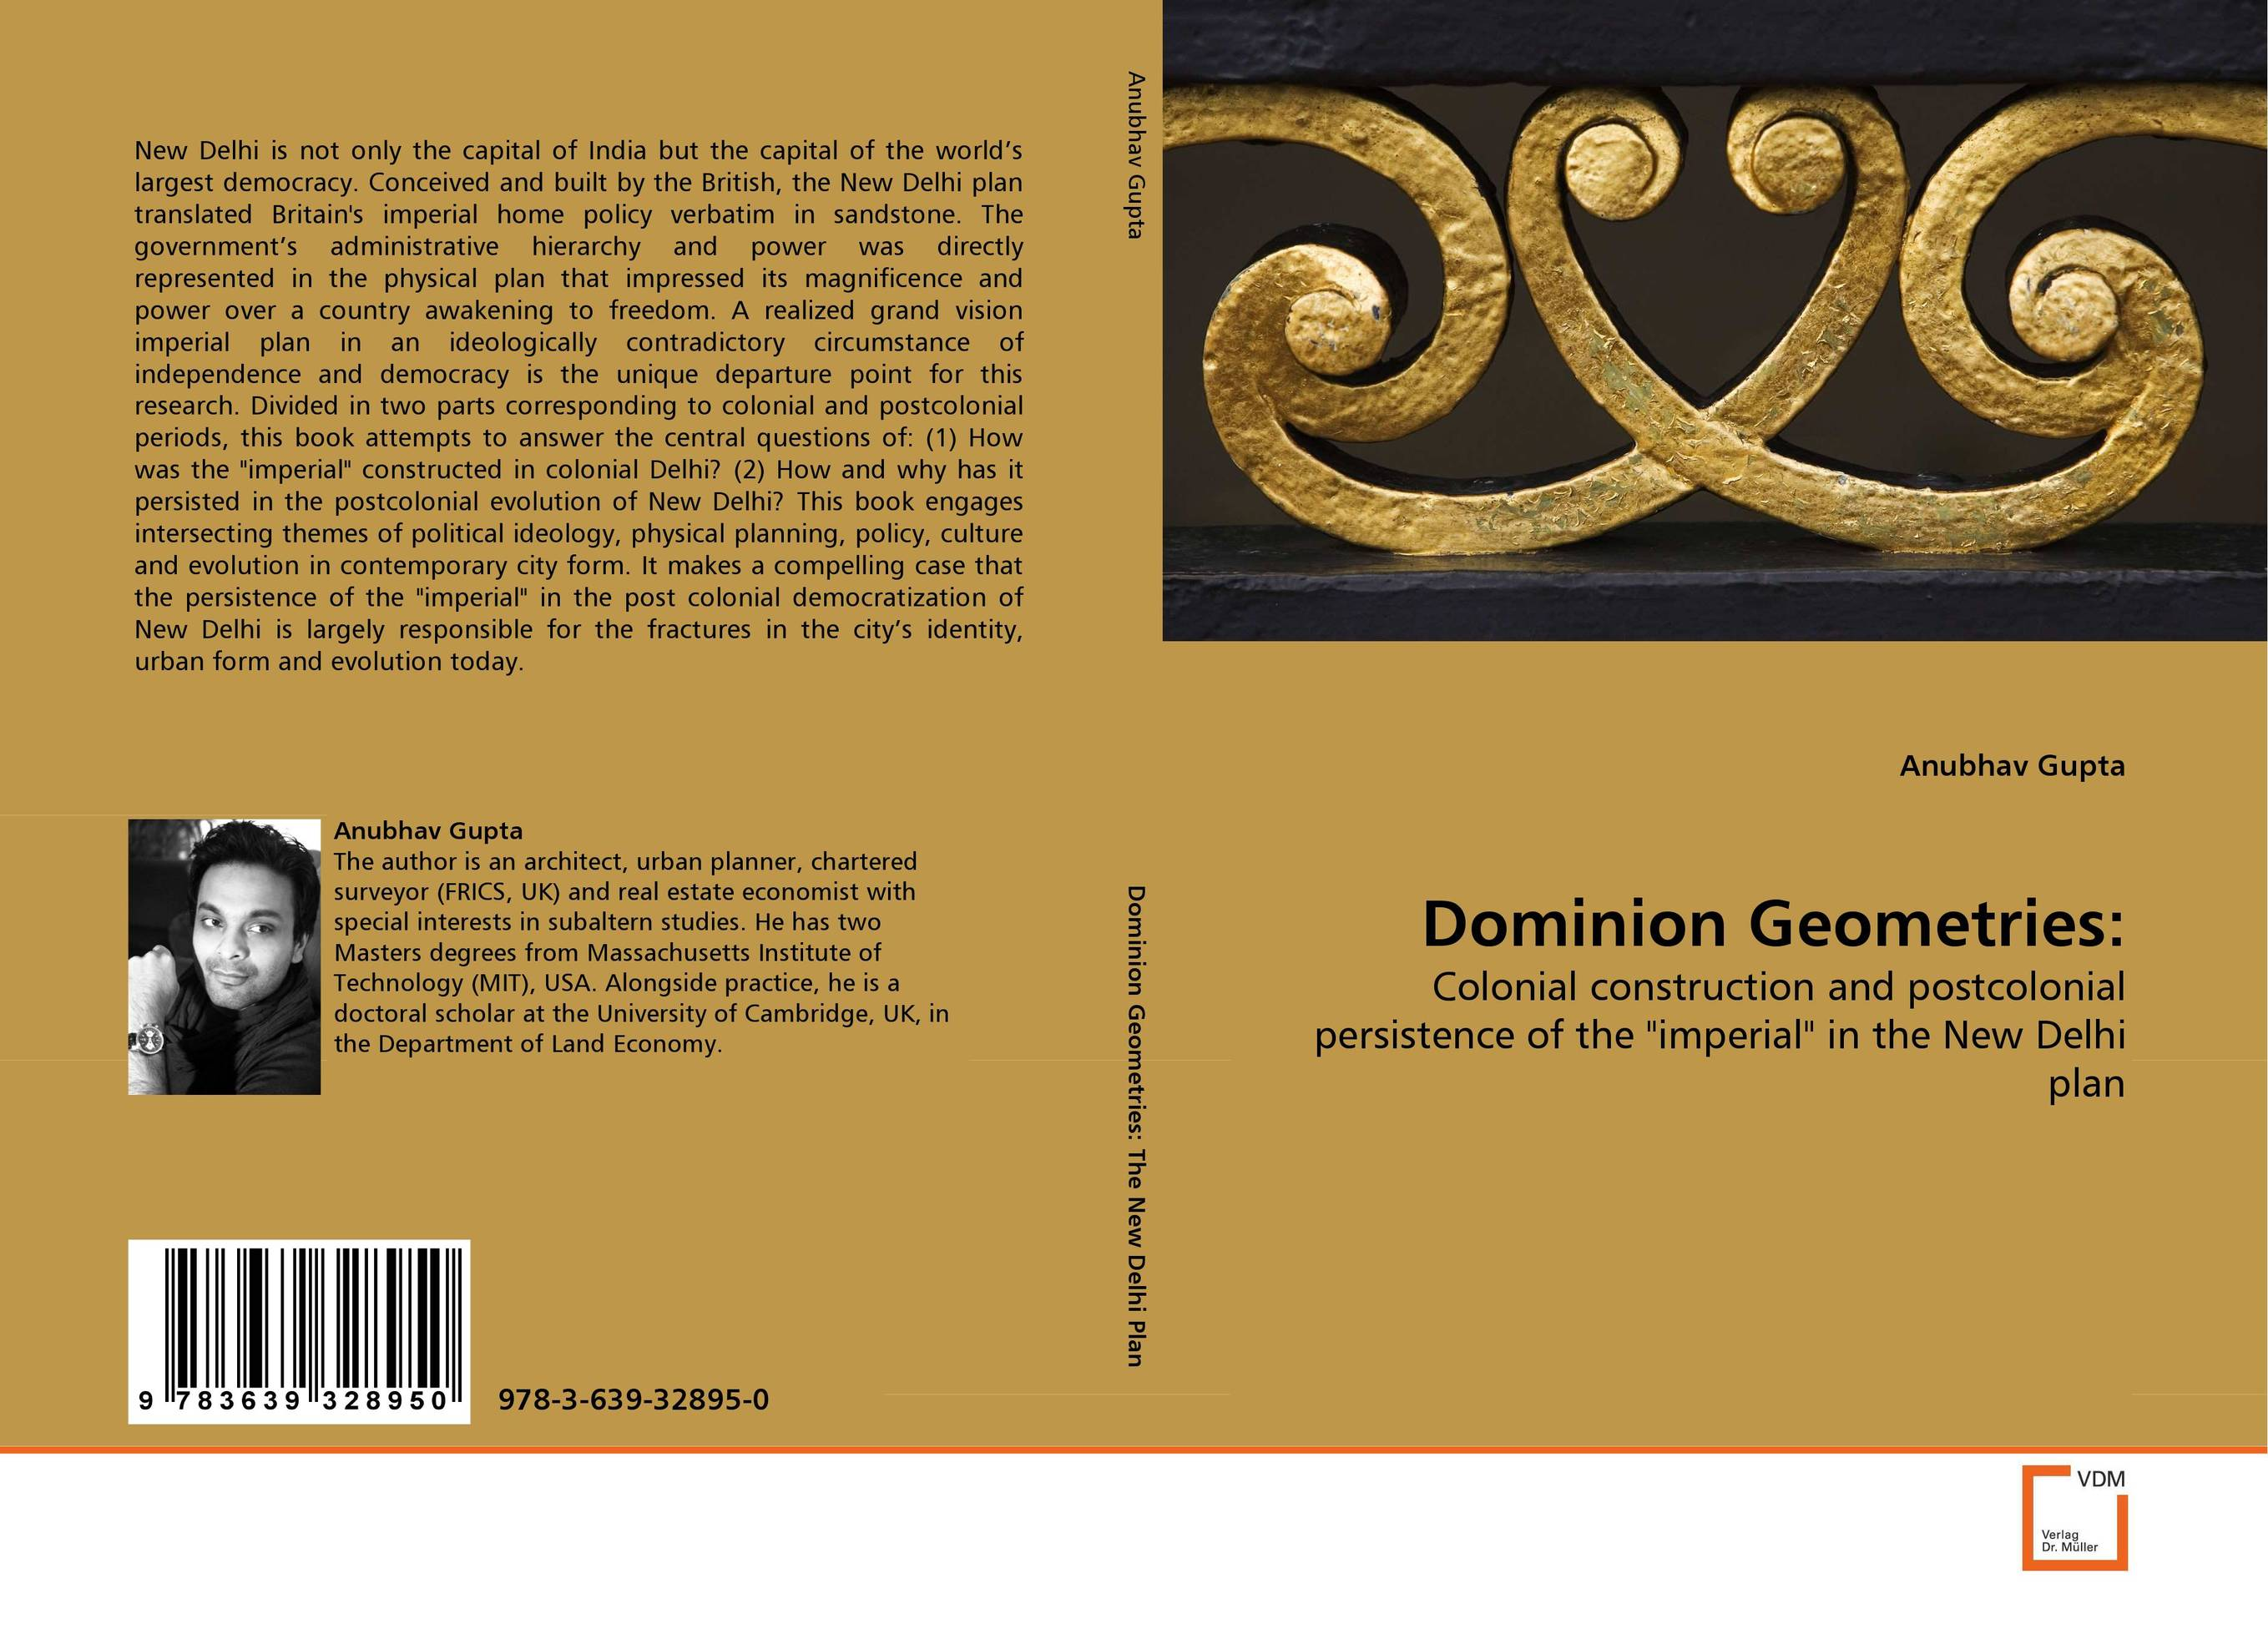 Dominion Geometries: the evolution of color vision